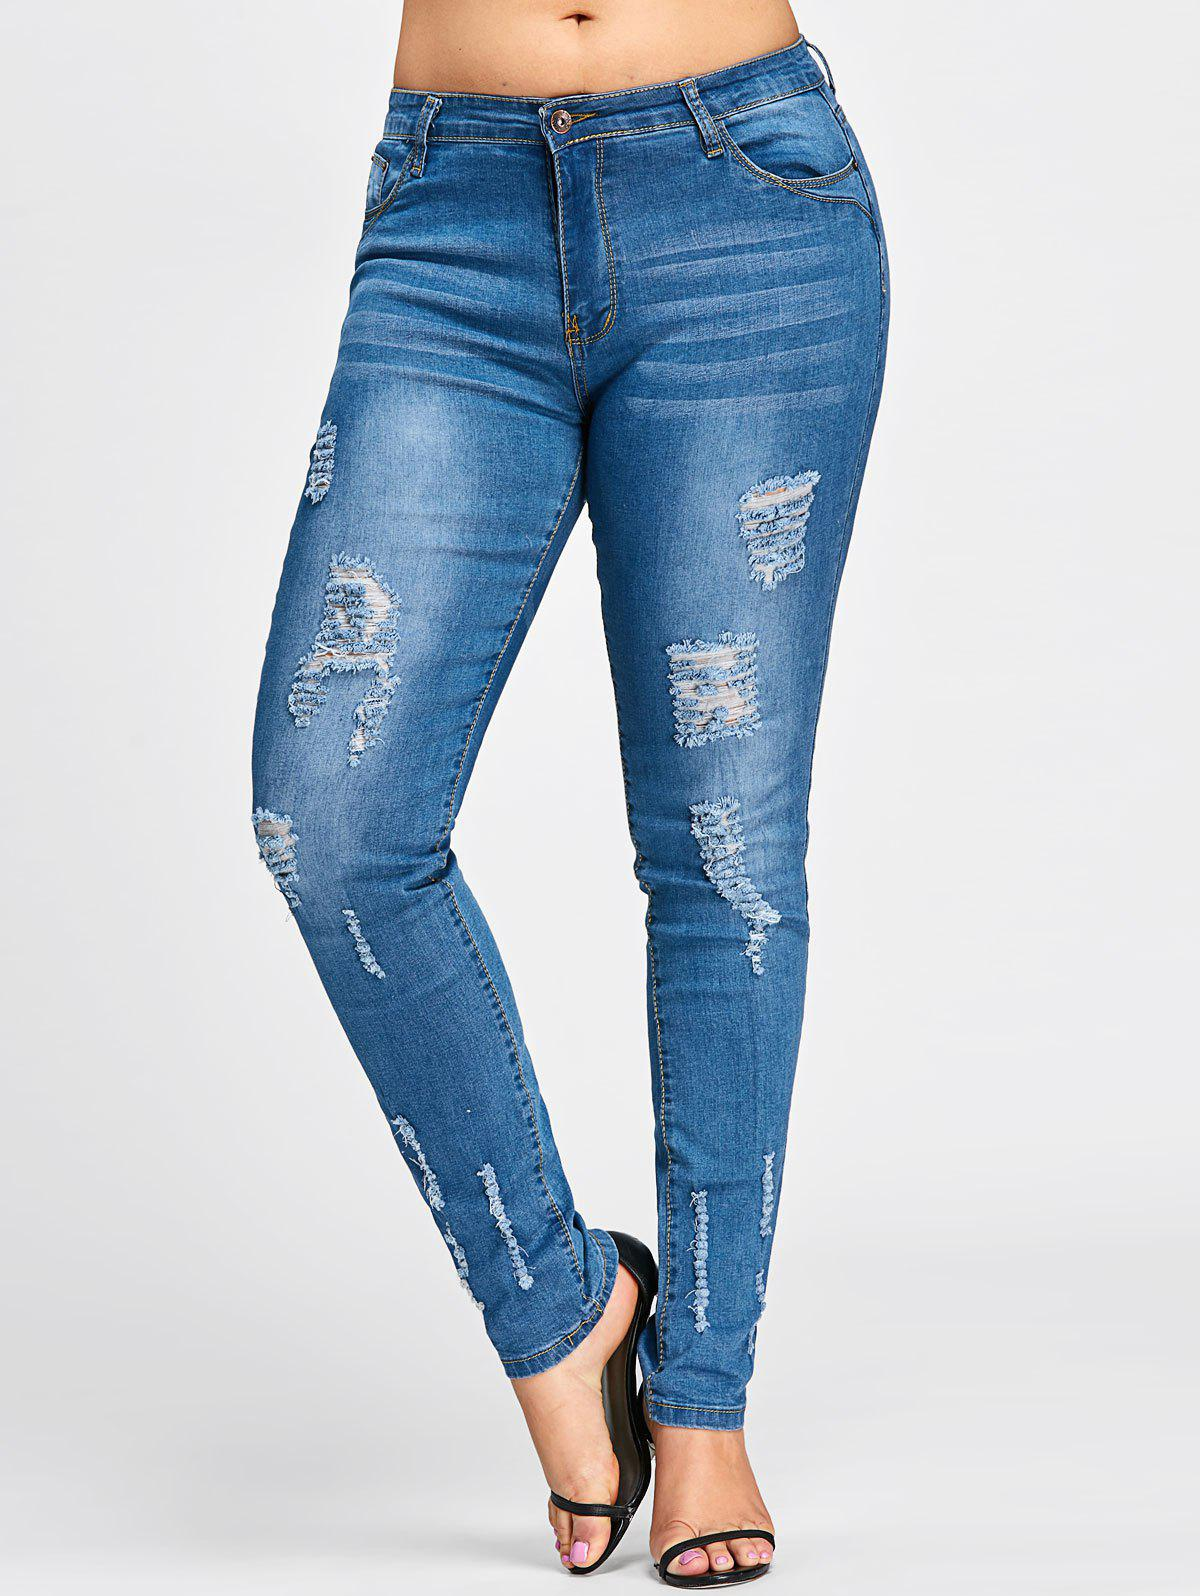 Plus Size Beach Destroyed Wash Skinny JeansWOMEN<br><br>Size: 3XL; Color: DENIM BLUE; Style: Fashion; Length: Normal; Material: Jeans; Fabric Type: Denim; Fit Type: Skinny; Waist Type: Mid; Closure Type: Button Fly; Pattern Type: Solid; Embellishment: Hole; Pant Style: Pencil Pants; Weight: 0.5300kg; Package Contents: 1 x Jeans;